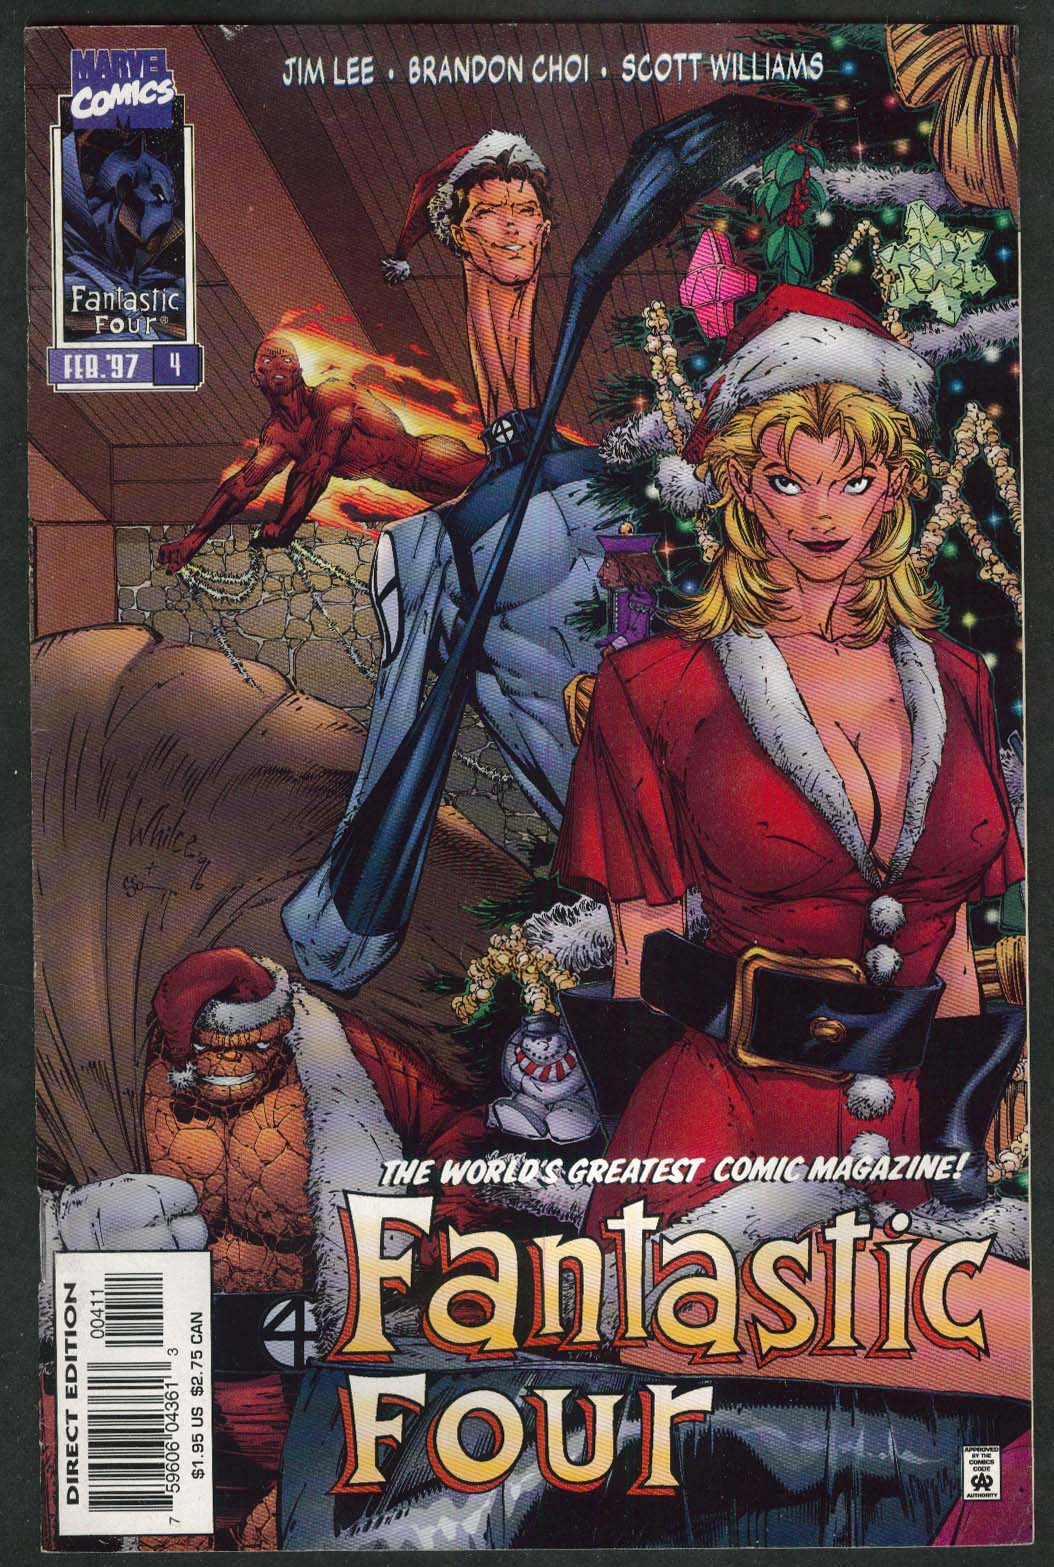 FANTASTIC FOUR #4 Marvel comic book 2 1997